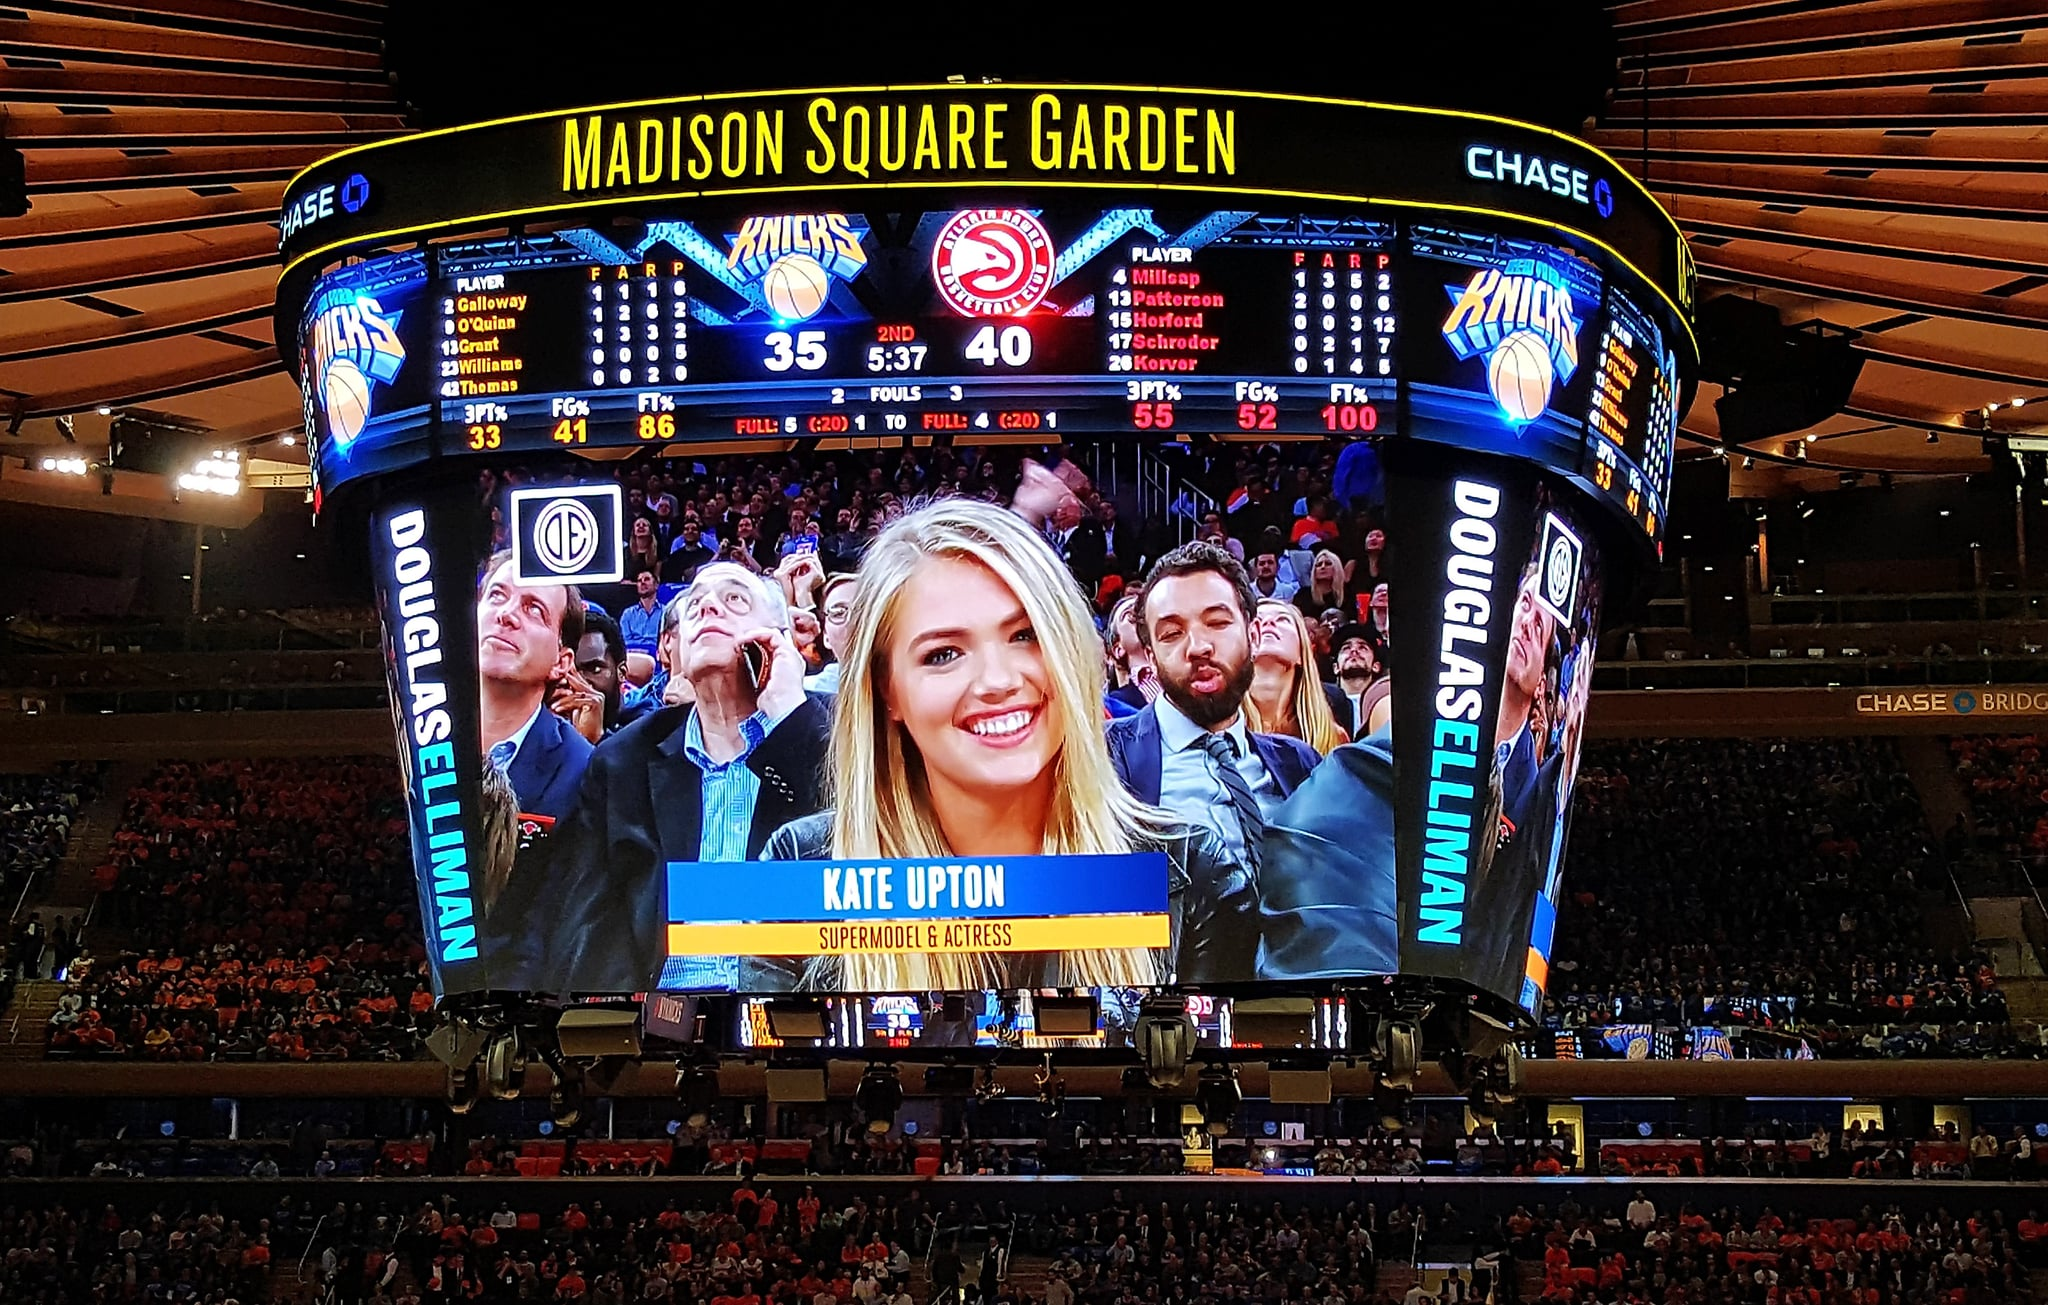 Kate Was Totally Ready For Her Close Up On The Jumbotron If There Was The Perfect Courtside Chic Outfit Kate Upton Just Wore It Popsugar Fashion Photo 4